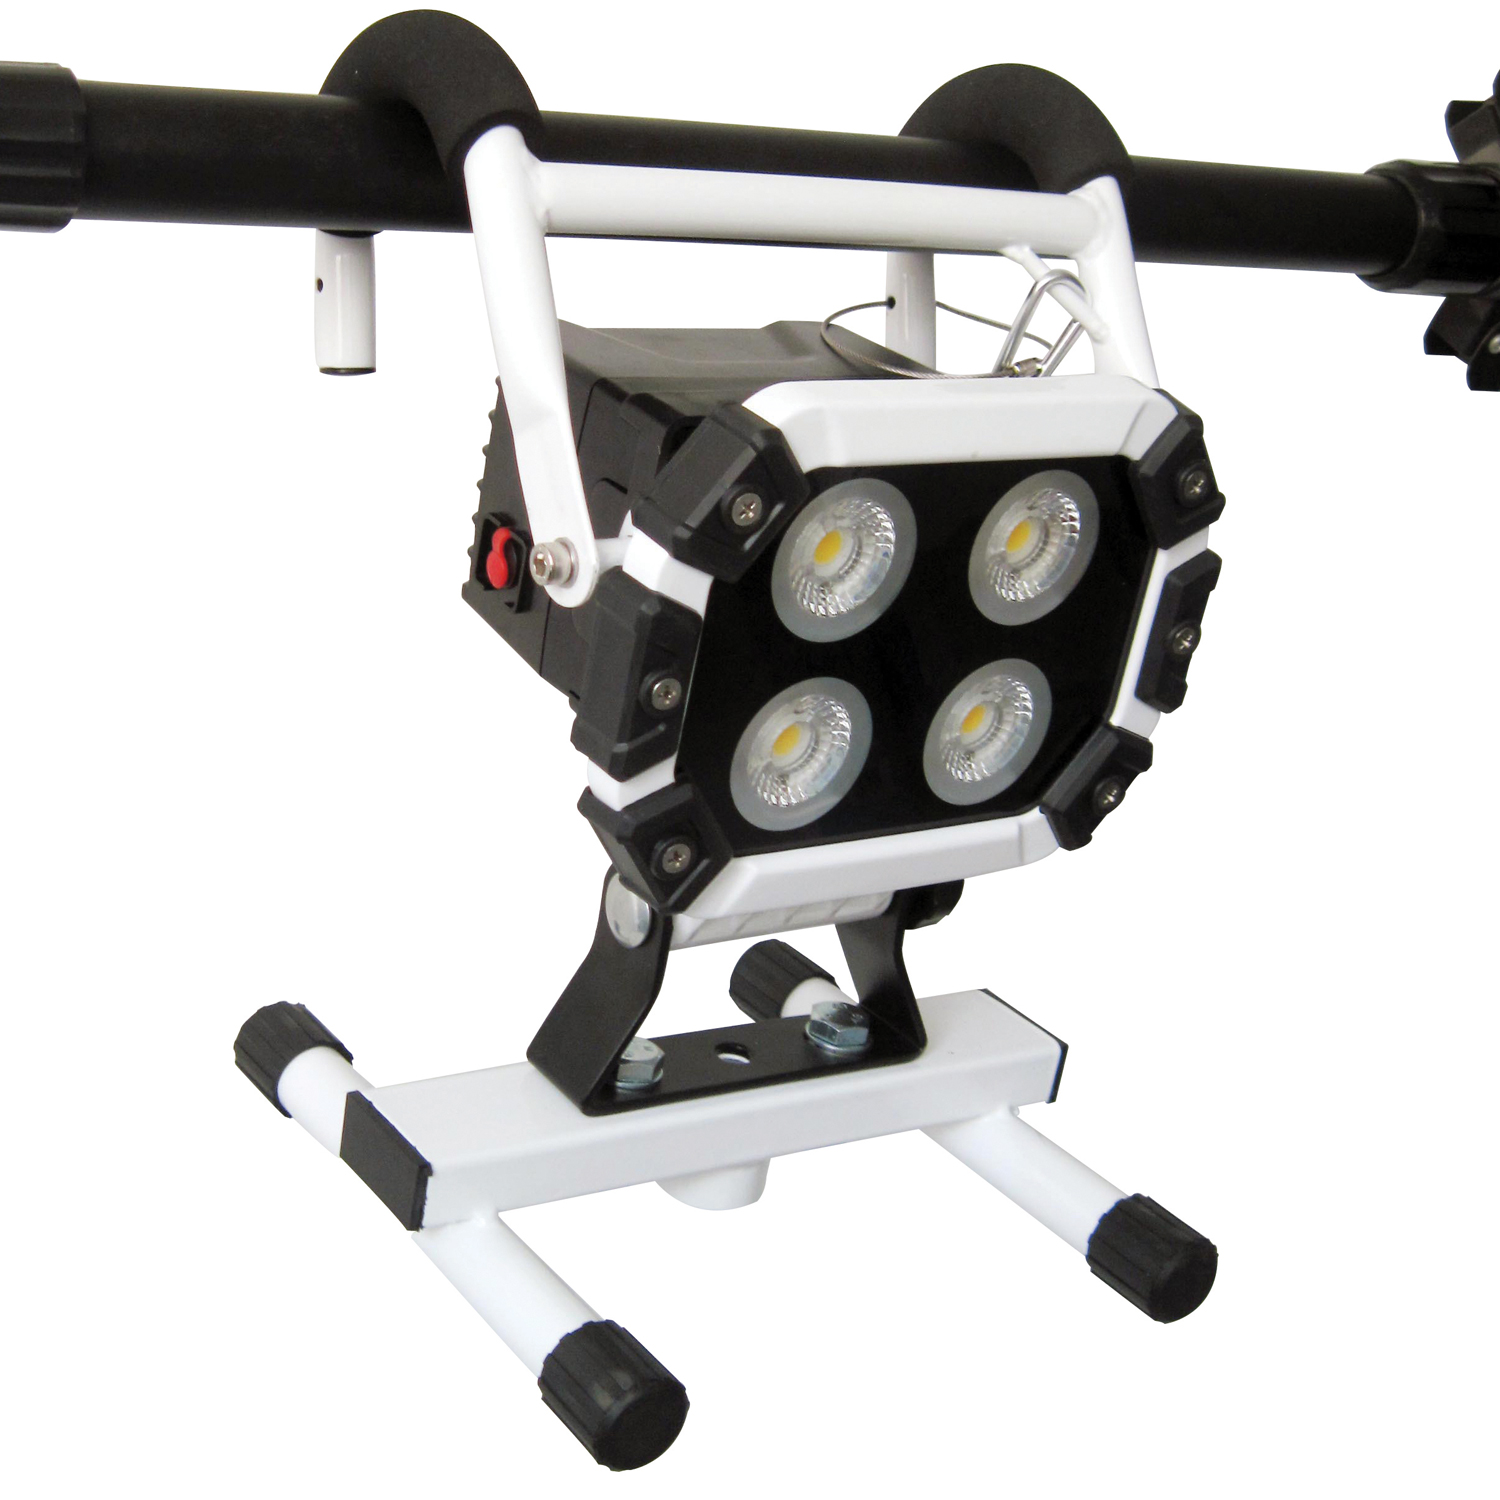 Snan Cob Led Work Light With Adjusting Stand Hanging Hook And Tuff T4000 Rechargeable Work Light Tradetuff